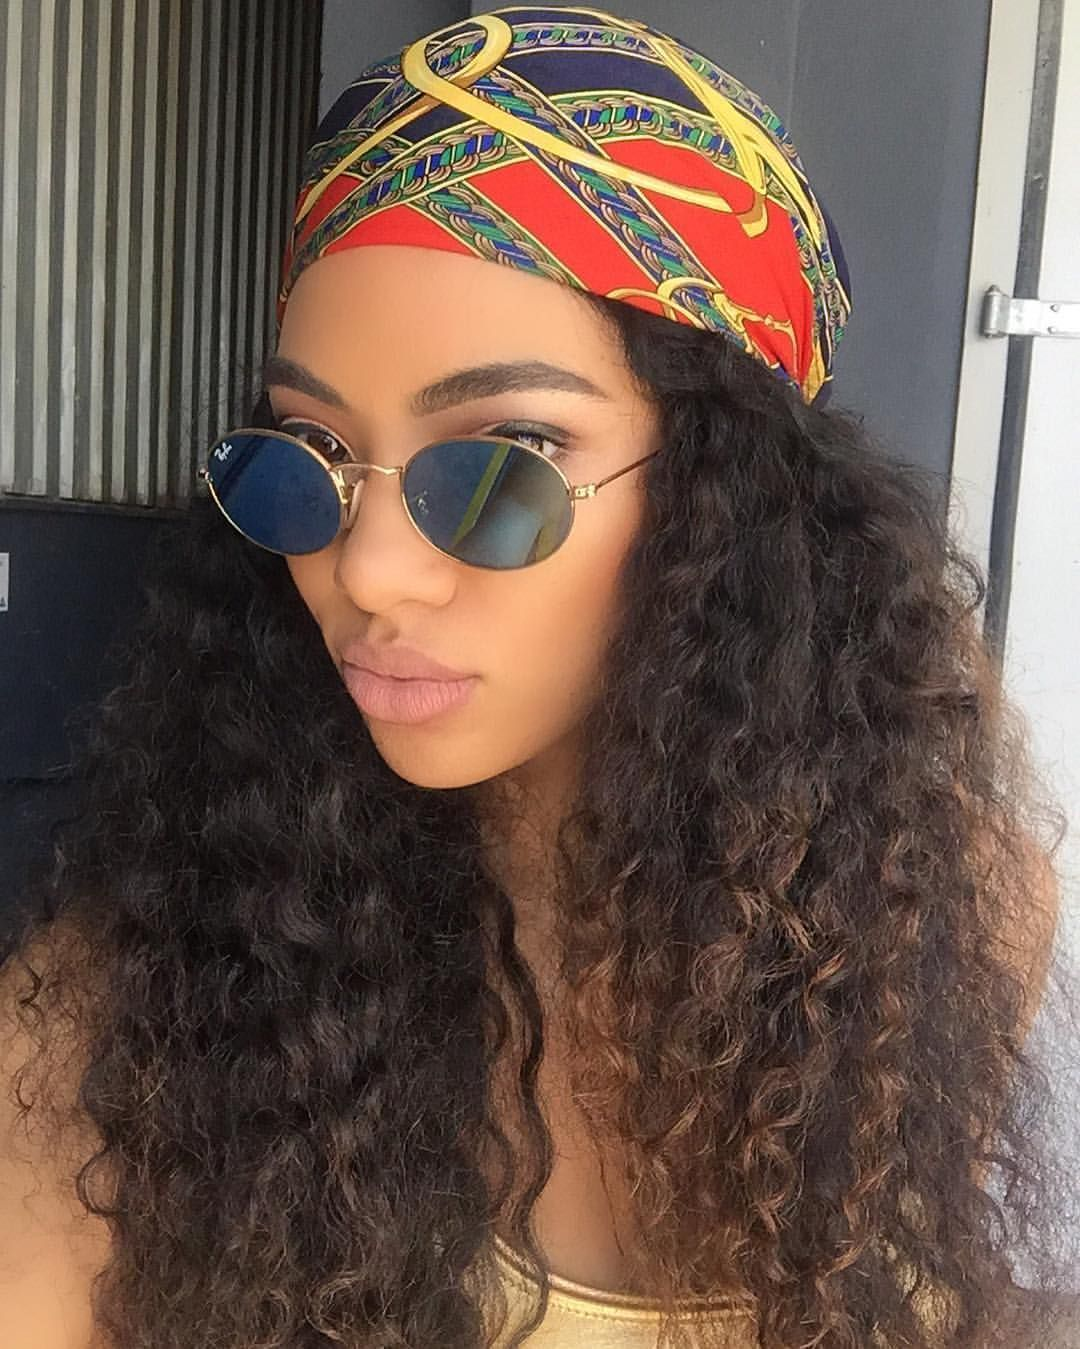 Turban Headband Curly Hair Short Curly Hair Layeredcurlyhair In 2020 Scarf Hairstyles Curly Hair Styles Headband Hairstyles